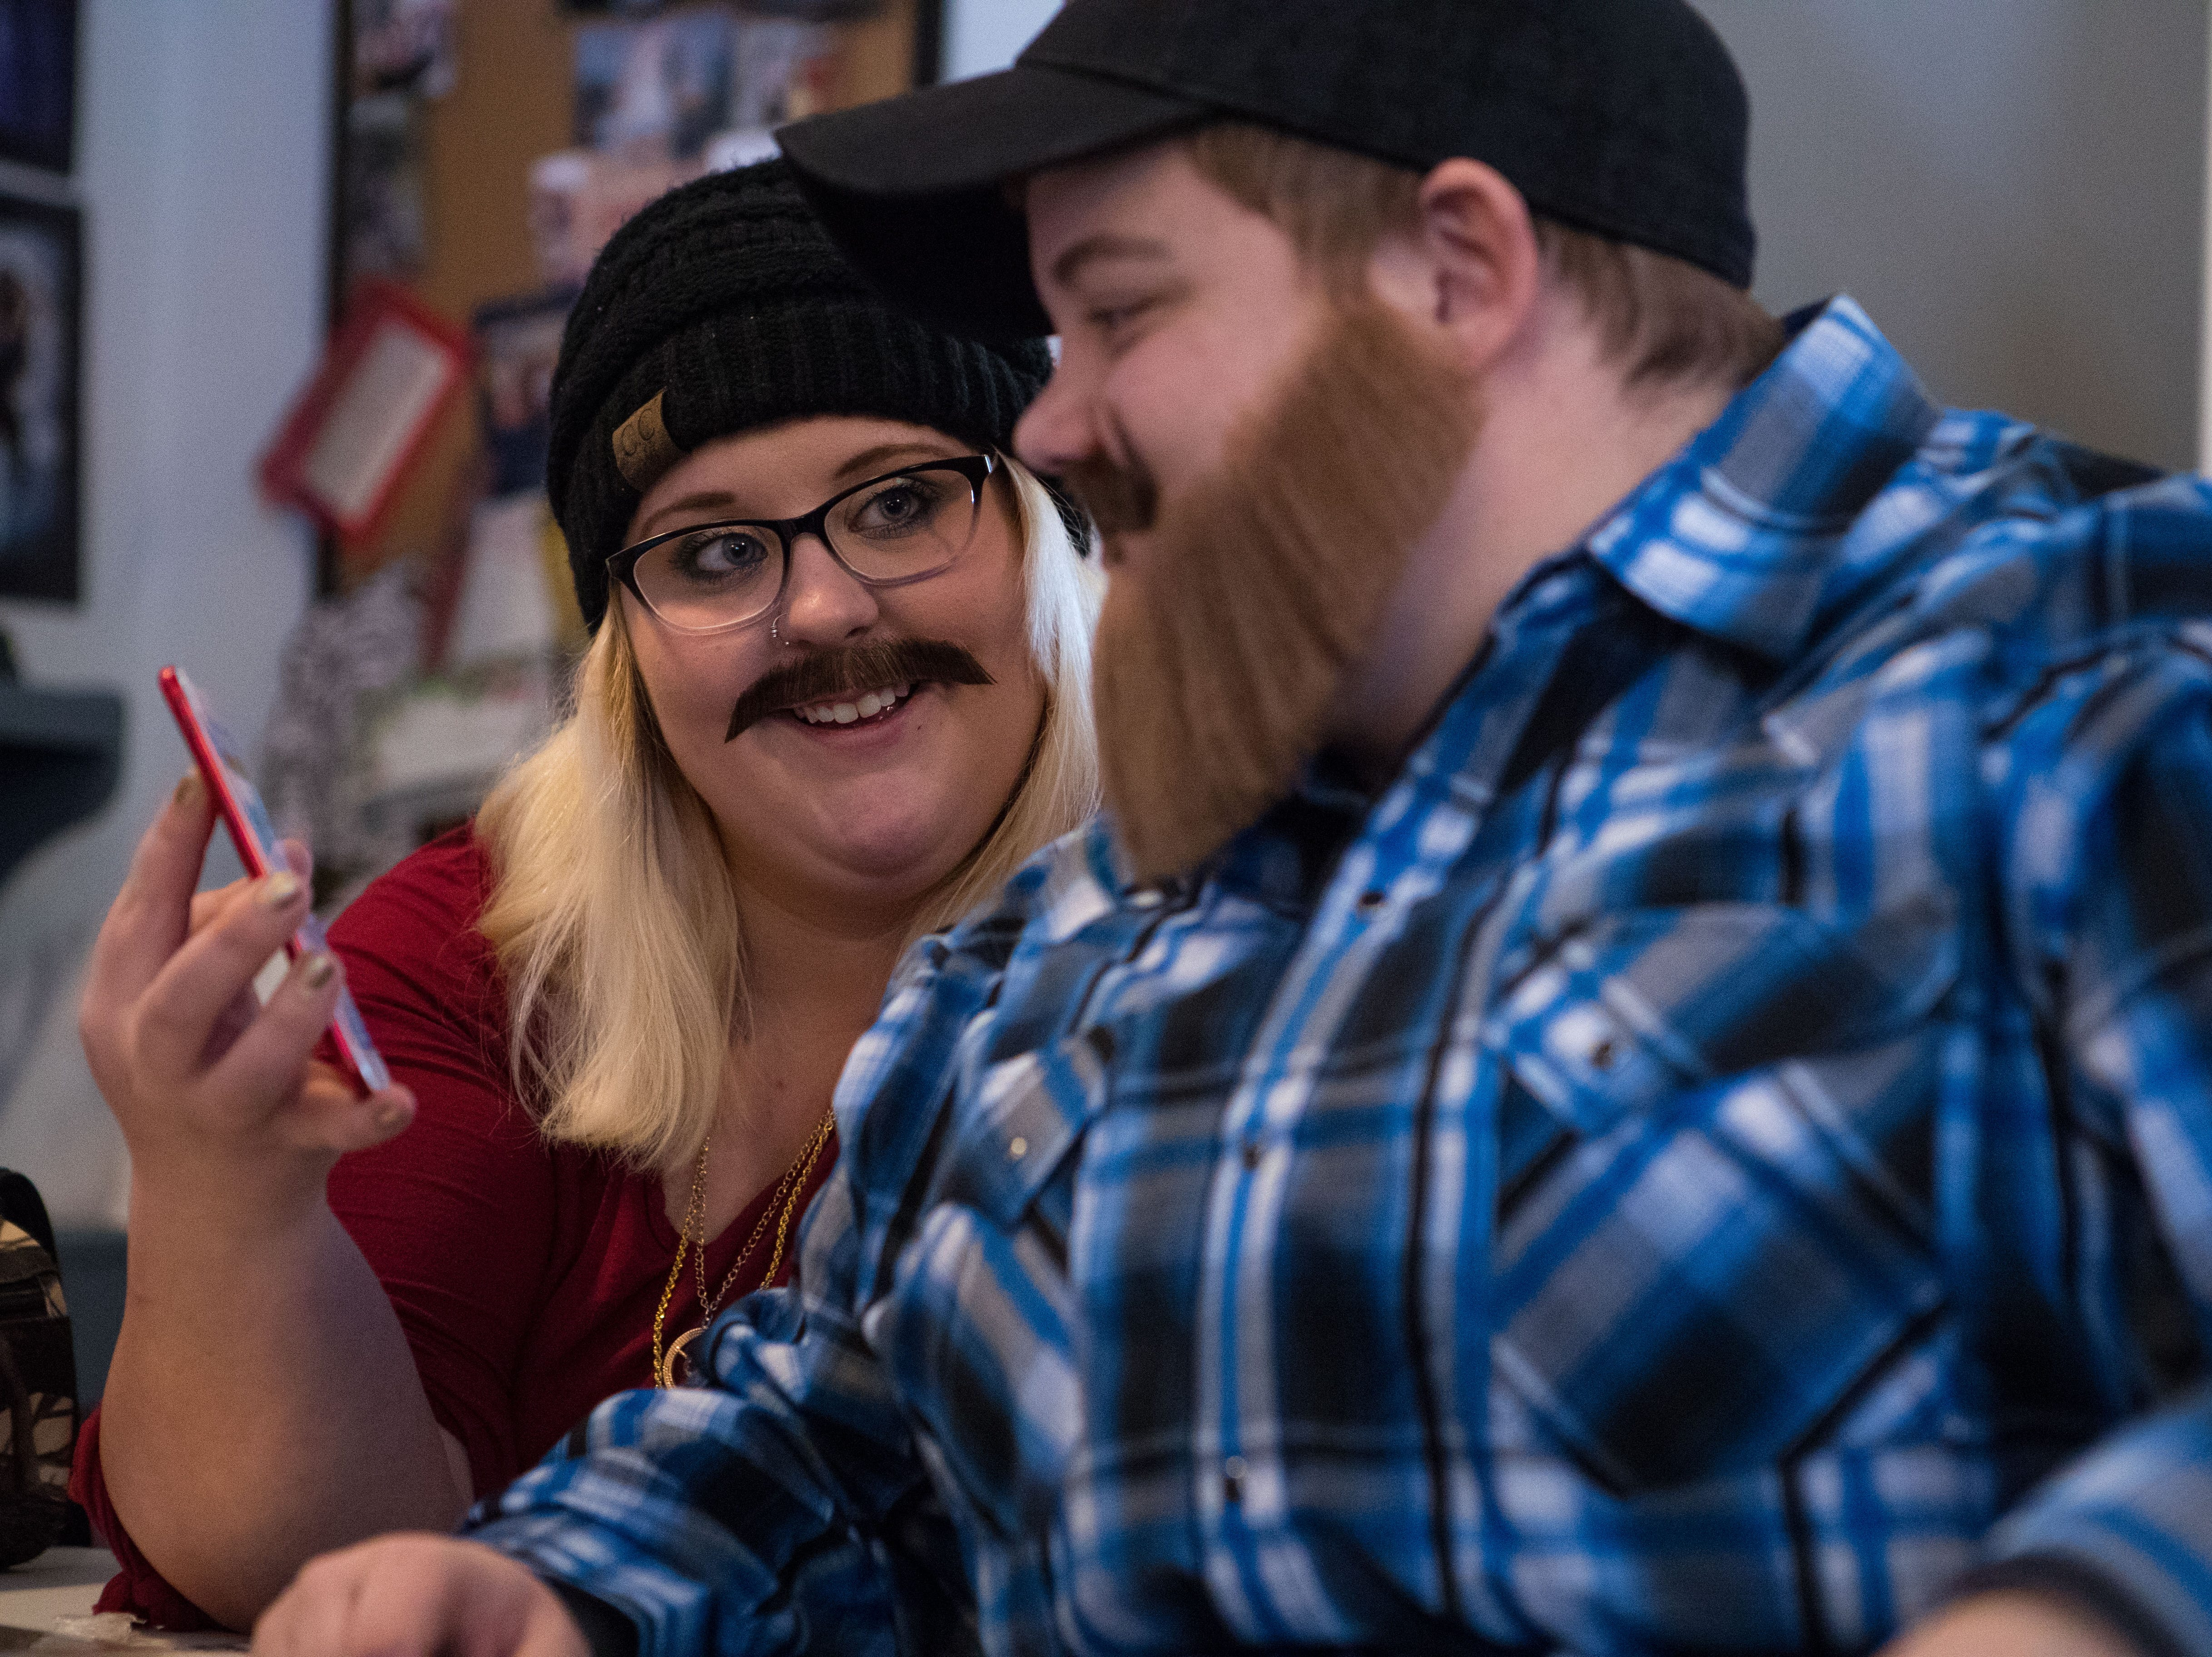 Jenna Askelson (left) and Kayla Harris (drag name: Sexton Urmum Valentine) react during the drag king rehearsal in Sioux Falls, S.D., Saturday, Jan. 26, 2019.